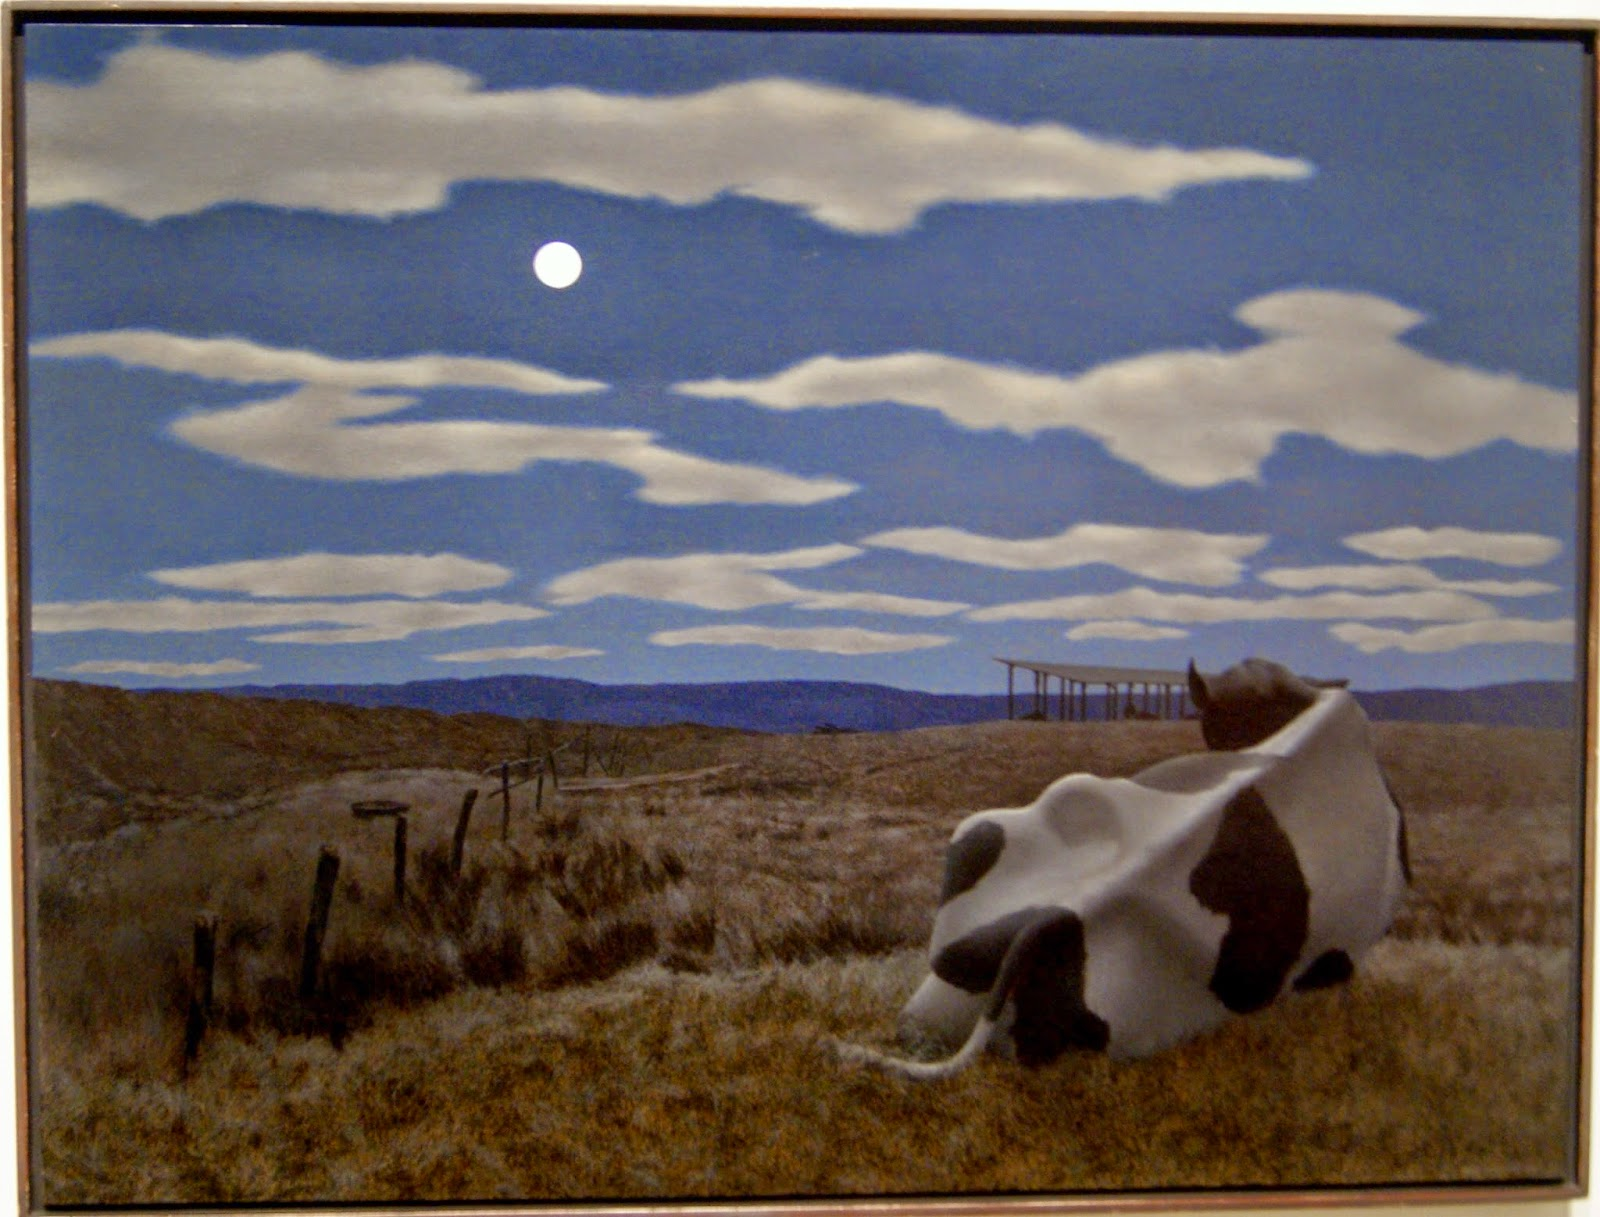 Alex Colville Exhibit at Art Gallery of Ontario in Toronto, Moon and Cow, 1963, paintings, art, artmatters, culture,ontario, Canadian Artist, Painter, Canada